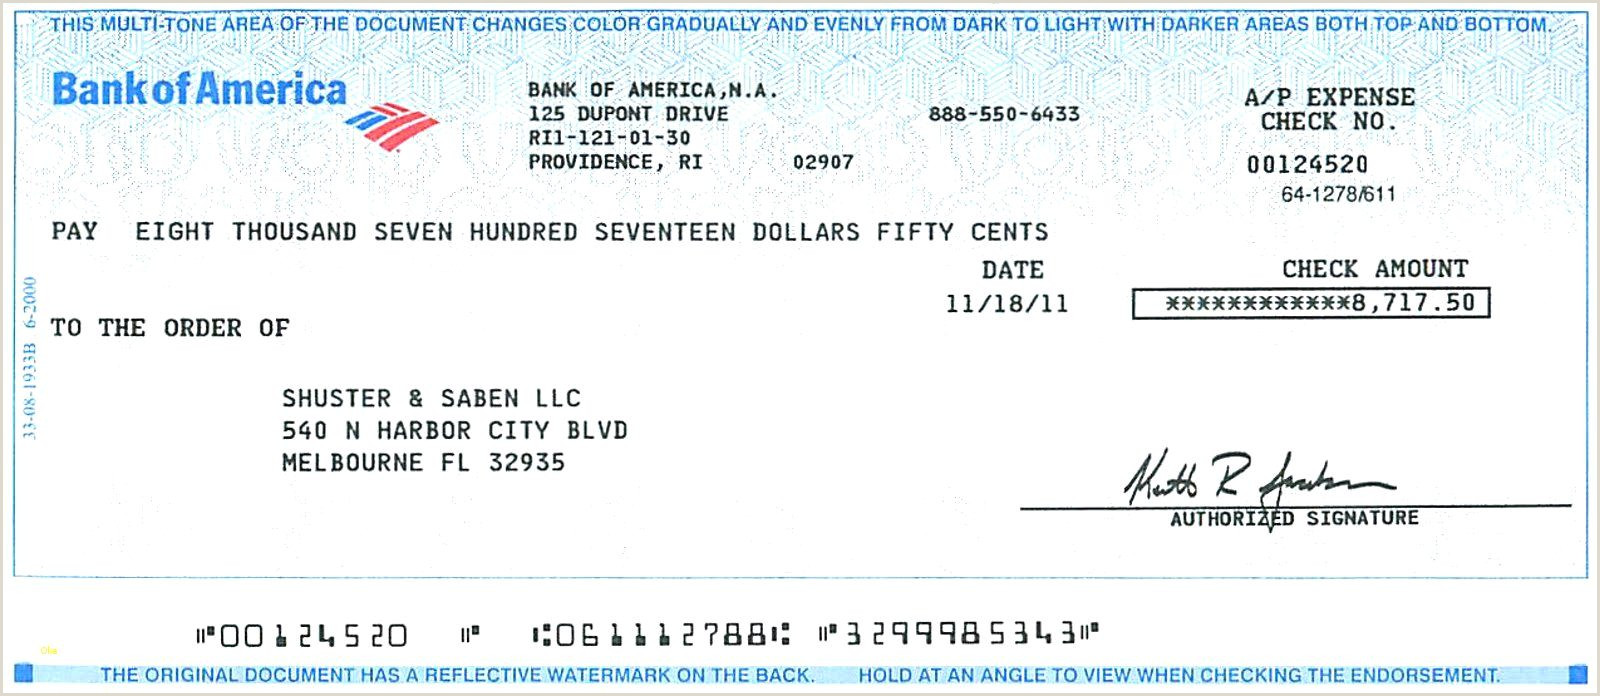 022 Printable Blank Check Template Pretend Checks Templates